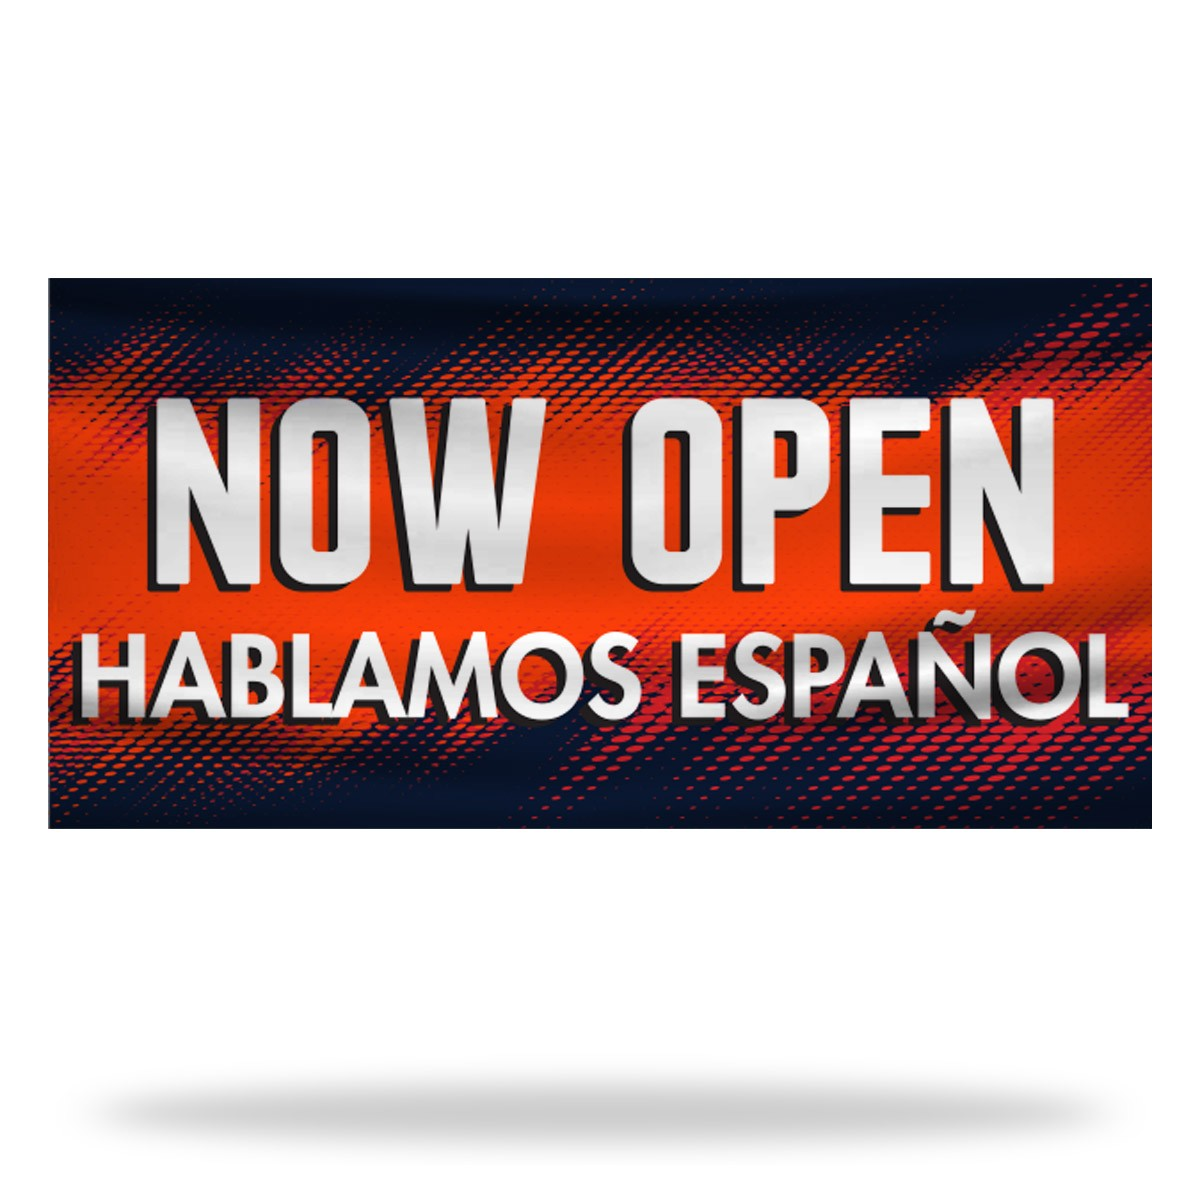 Spanish Now Open Flags & Banners Design 01